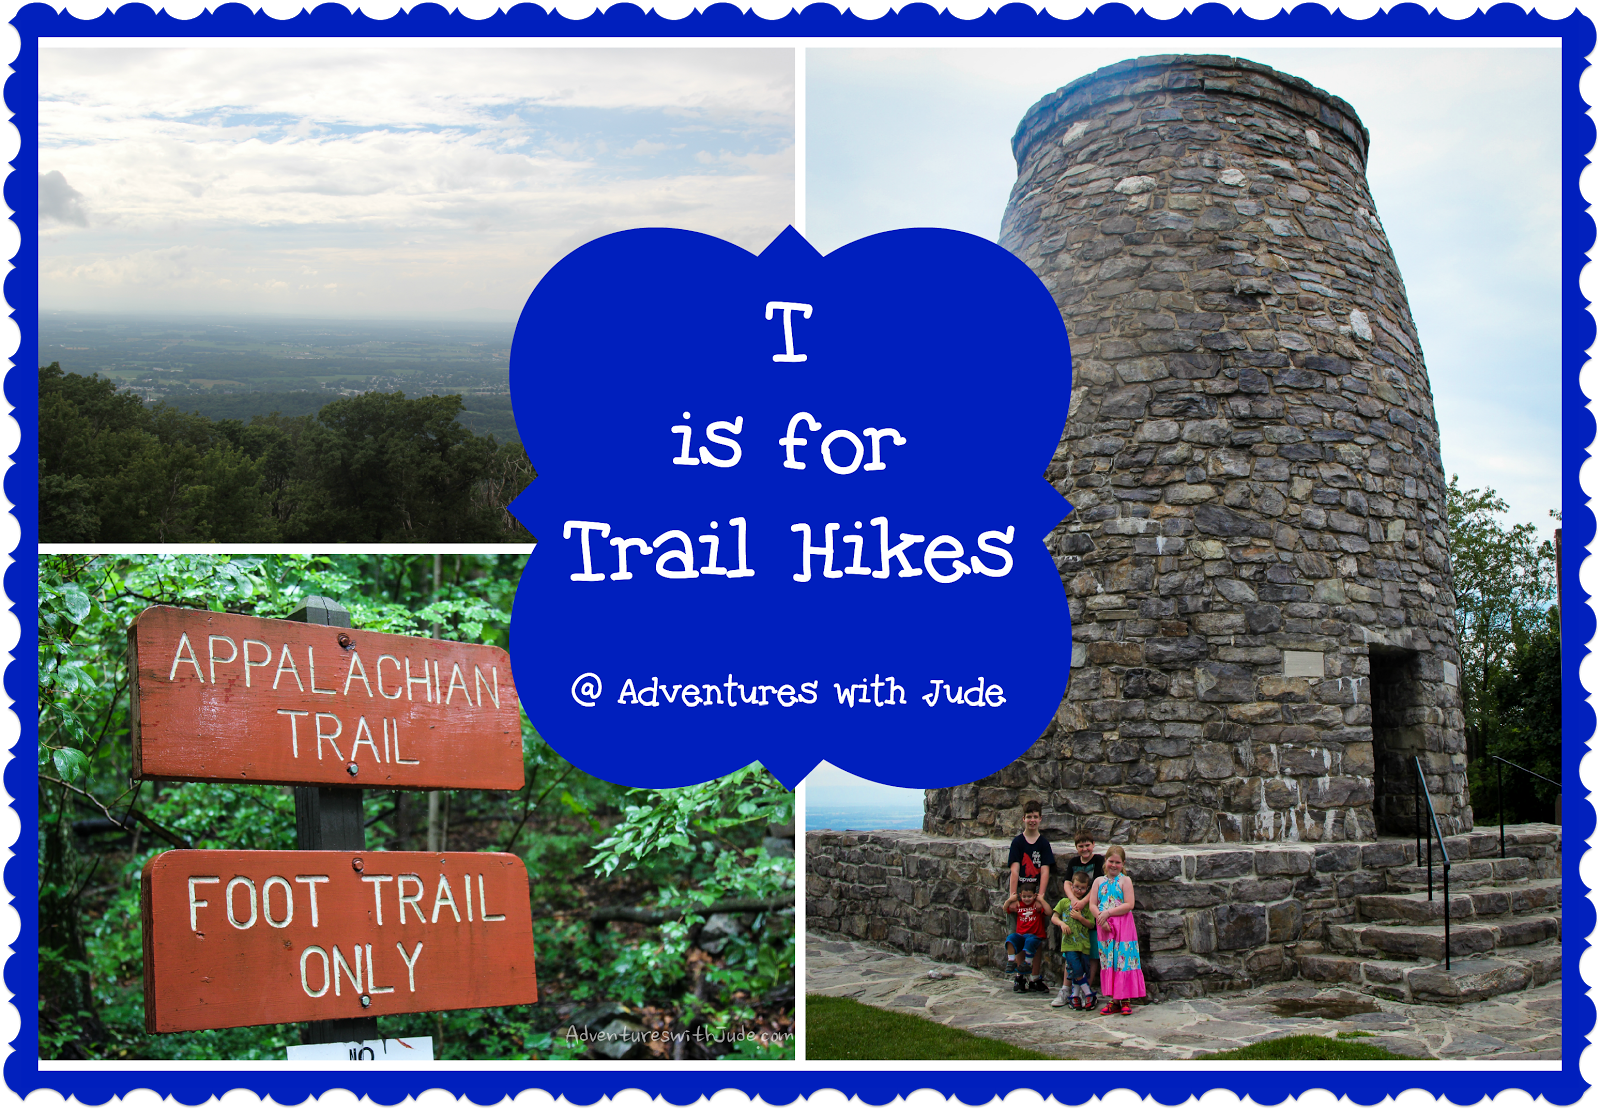 T is for Trail Hikes - Appalachian Trail area, WV/MD